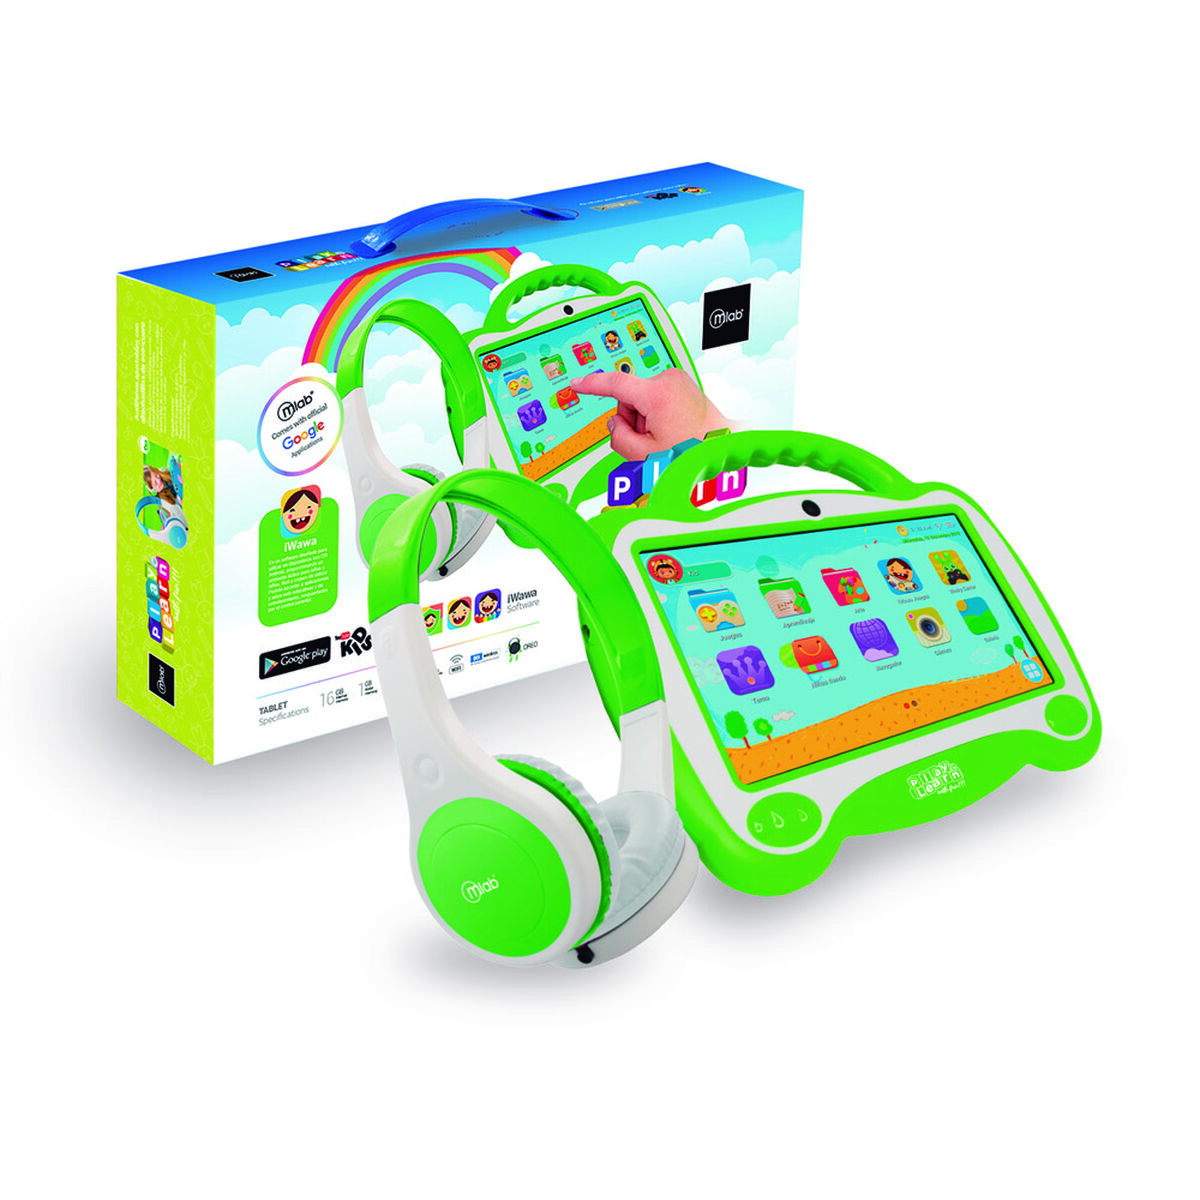 "Tablet Microlab KID Quad Core 1GB 16GB 7"" Verde +Aud"